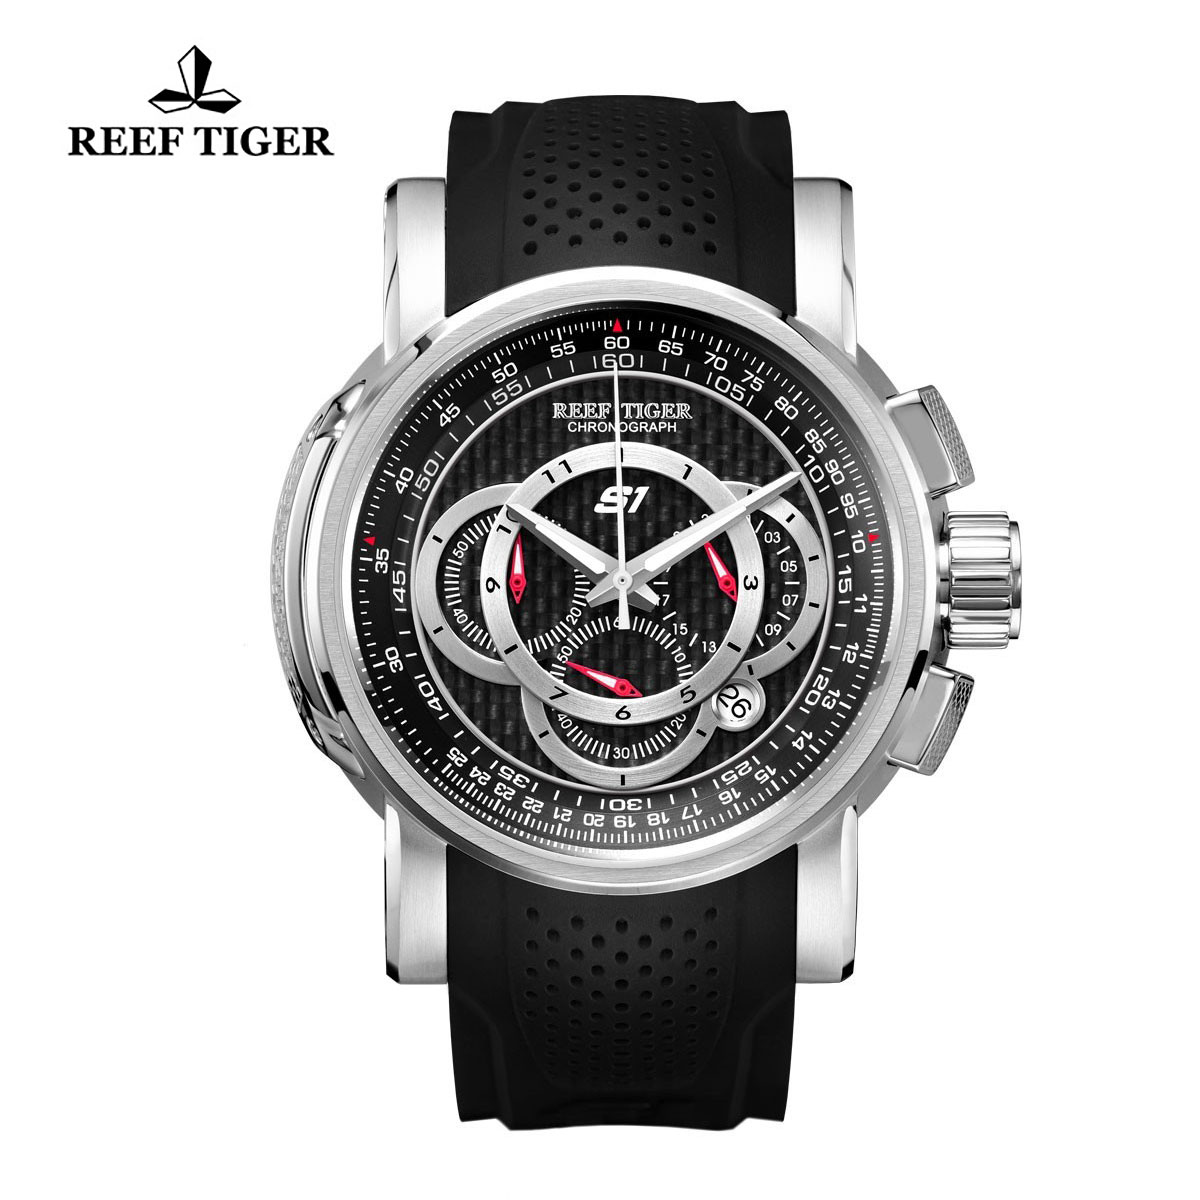 Reef Tiger Top Speed Sport Watches Chronograph Steel Case Black Dial Rubber Strap Watches RGA3063-YBB